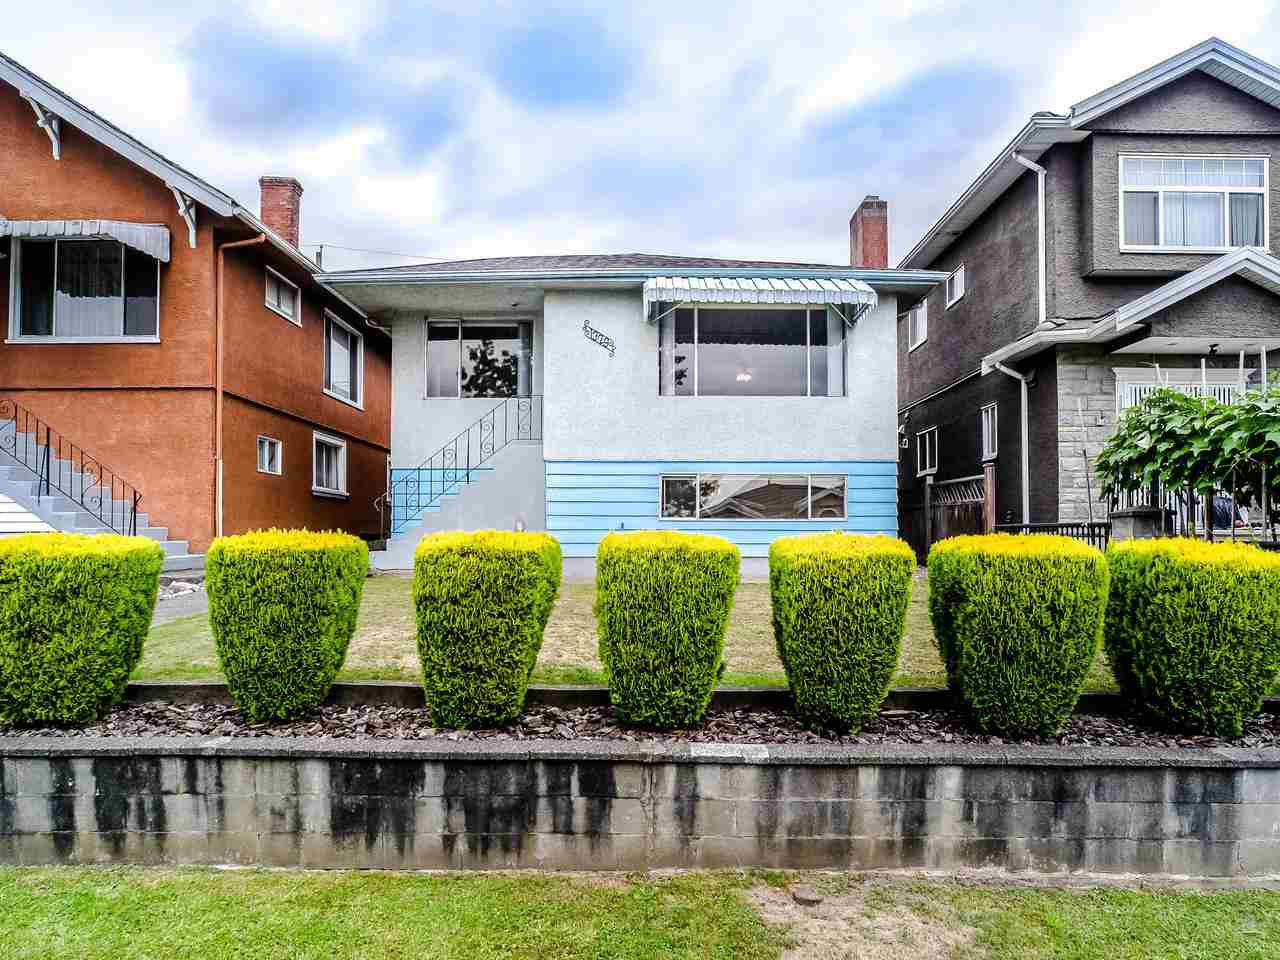 Main Photo: 1329 E 62ND Avenue in Vancouver: South Vancouver House for sale (Vancouver East)  : MLS®# R2494112